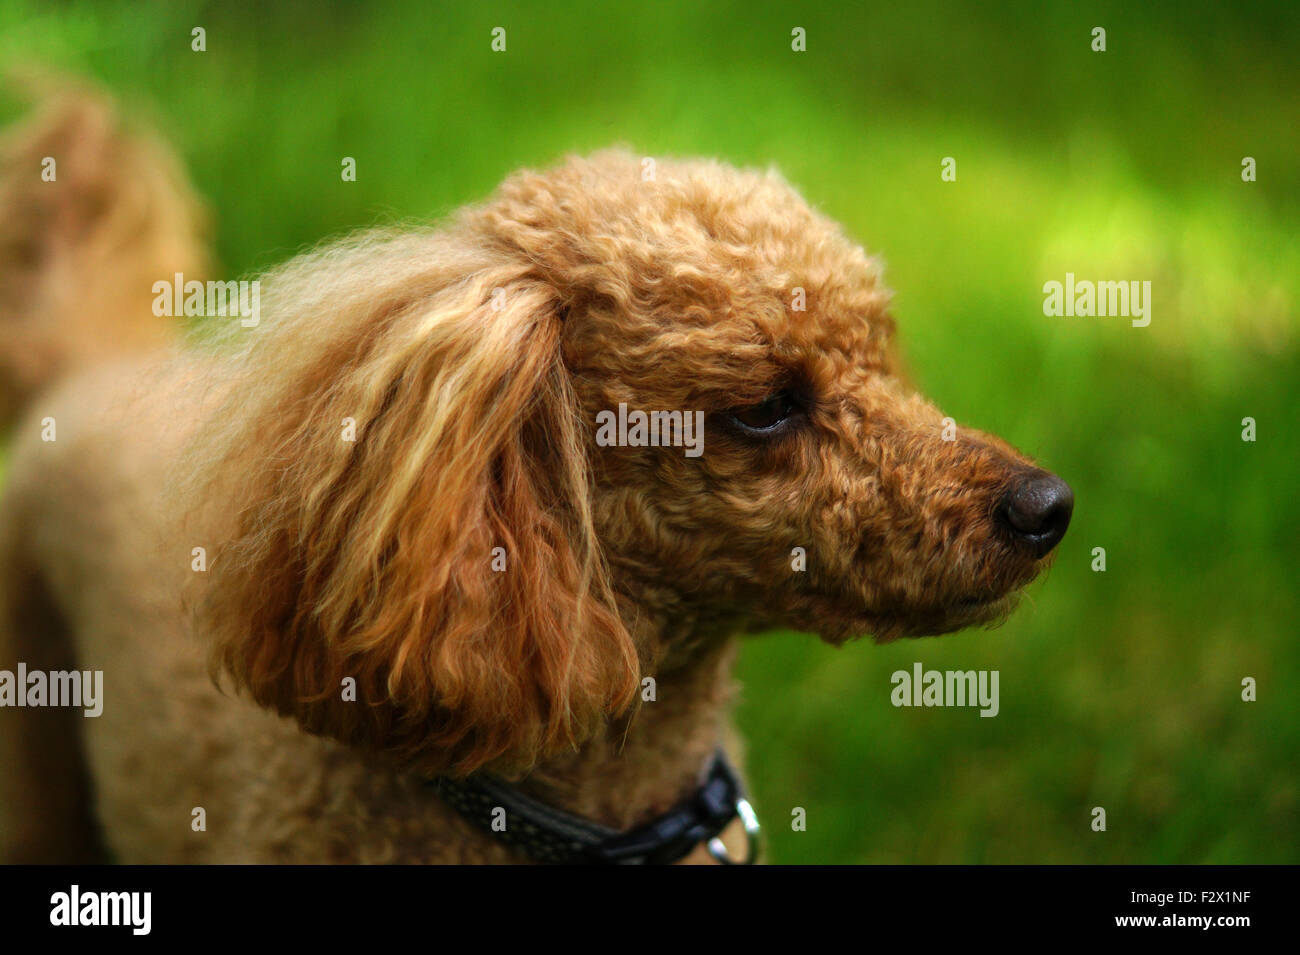 Red Toy Poodle in Woods with grass background side view - Stock Image